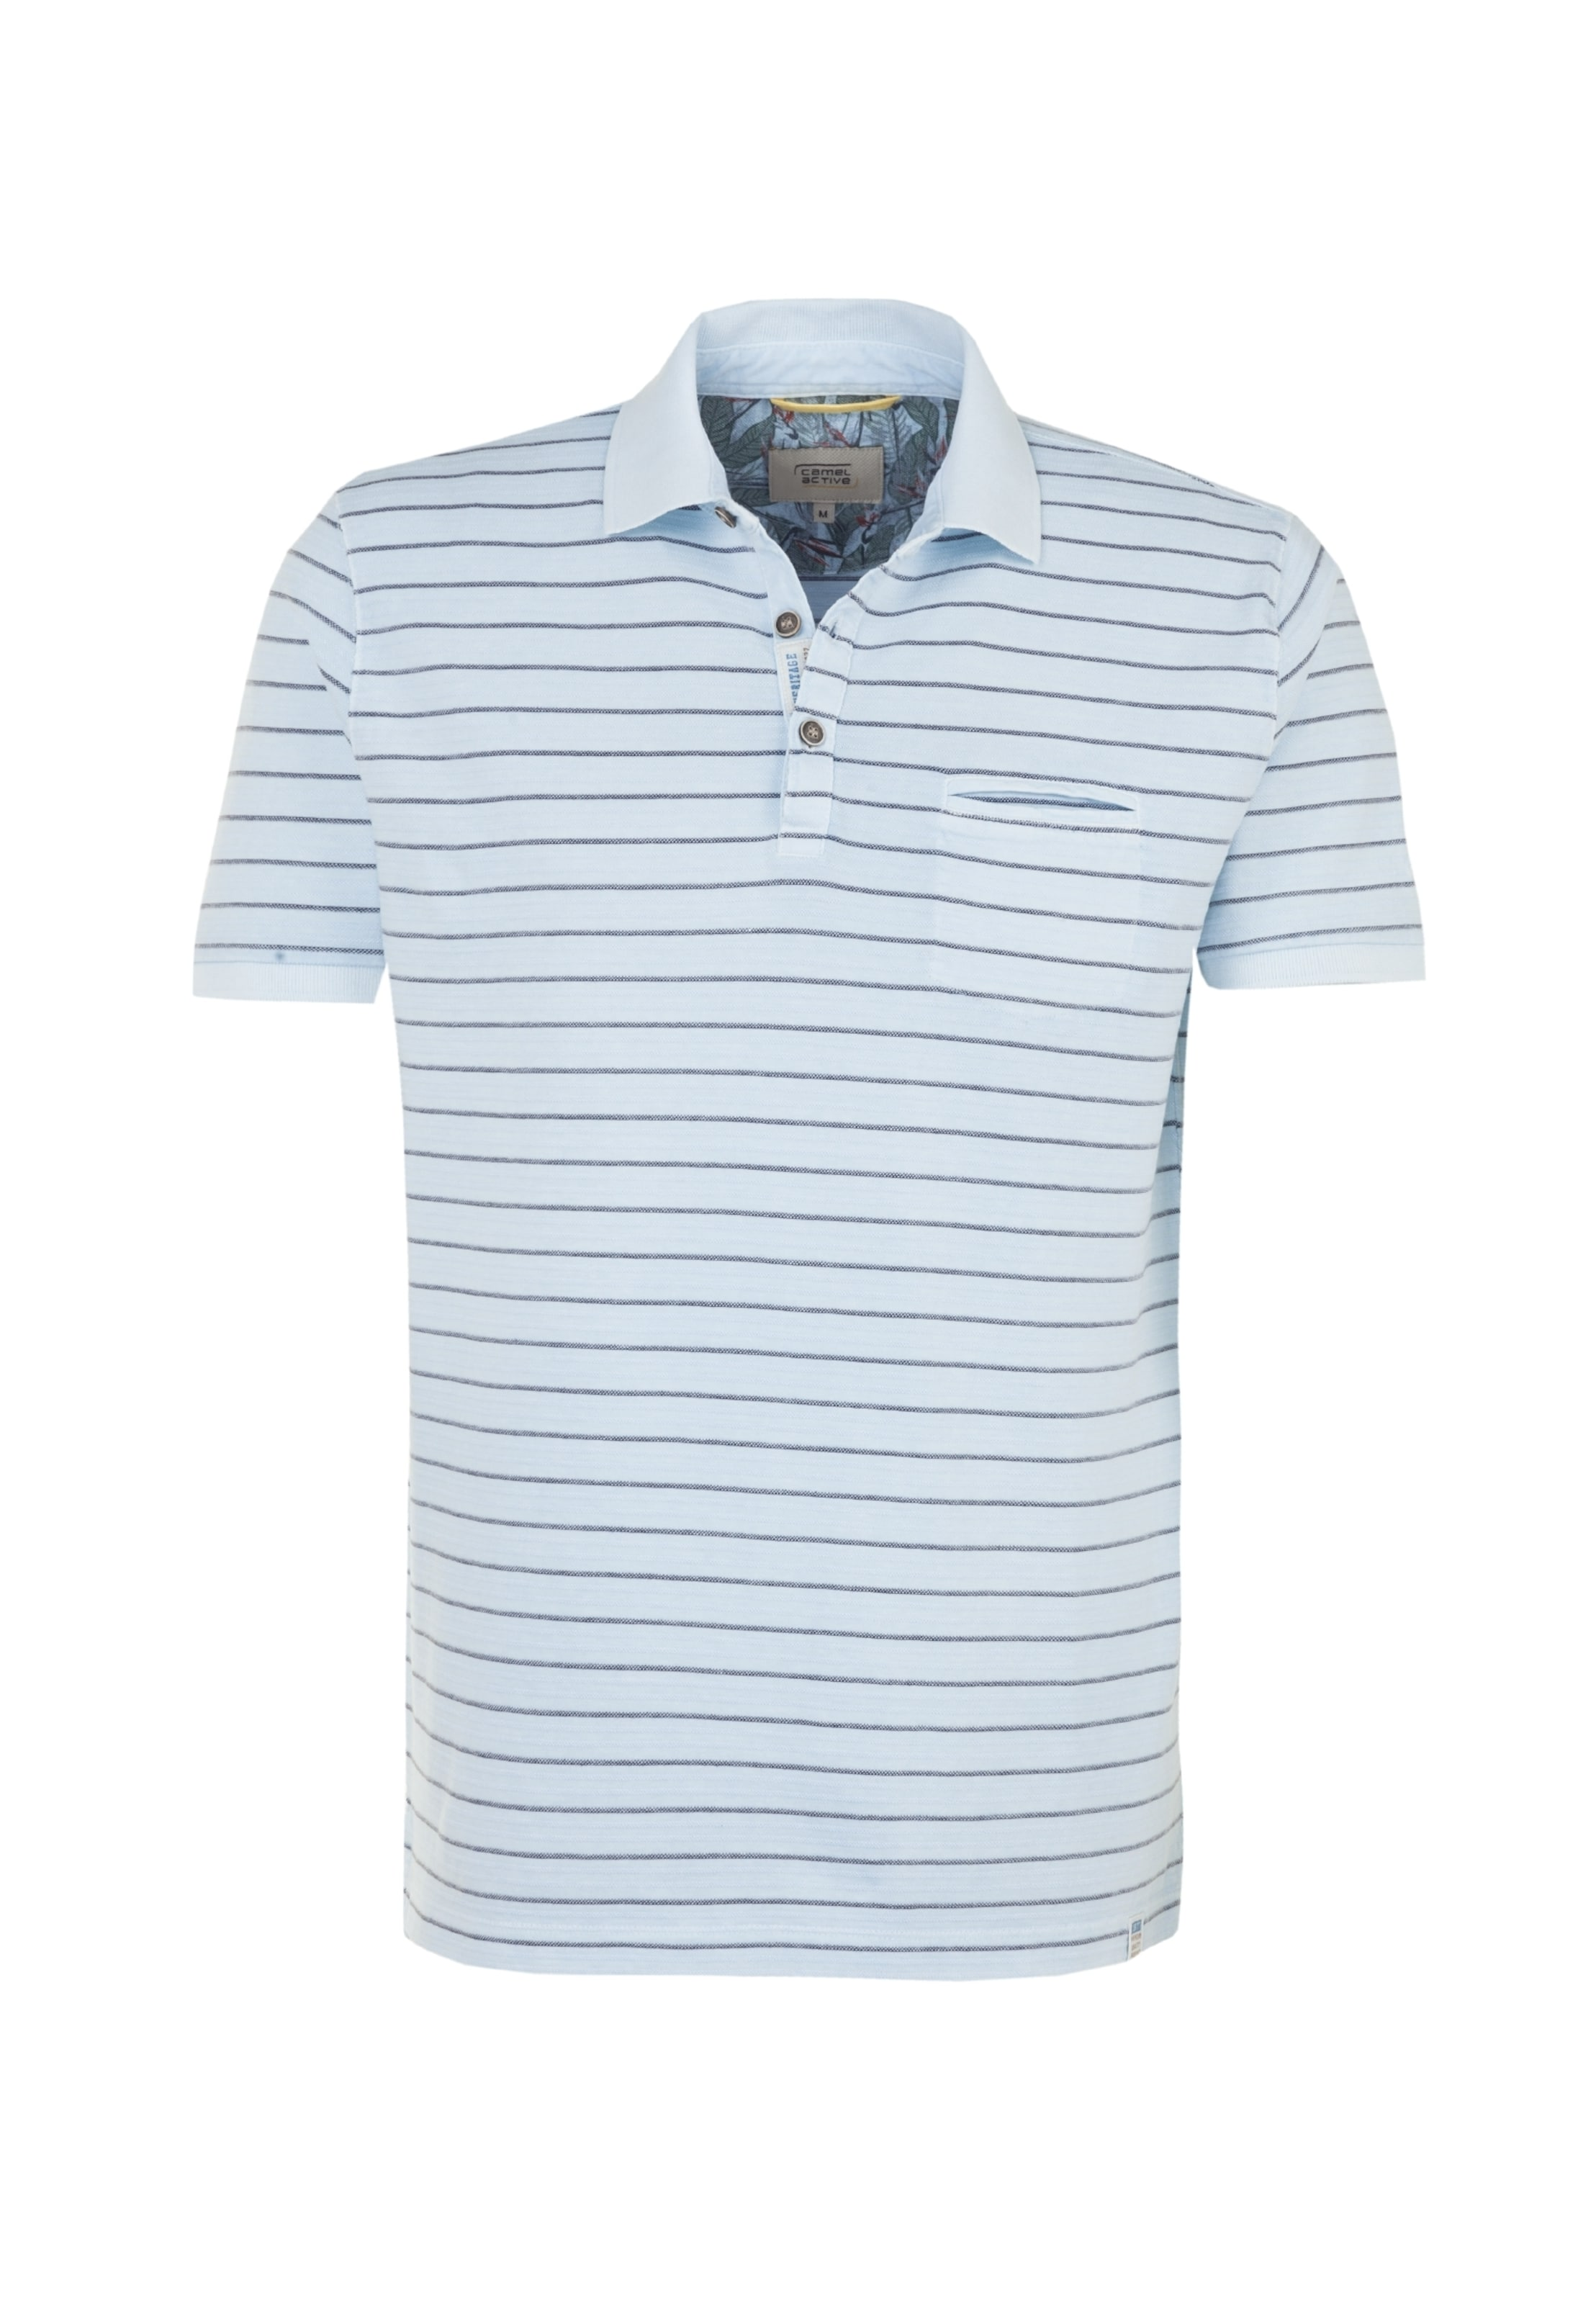 Camel Active shirt BlauHellblau In Polo CrdxBeoW